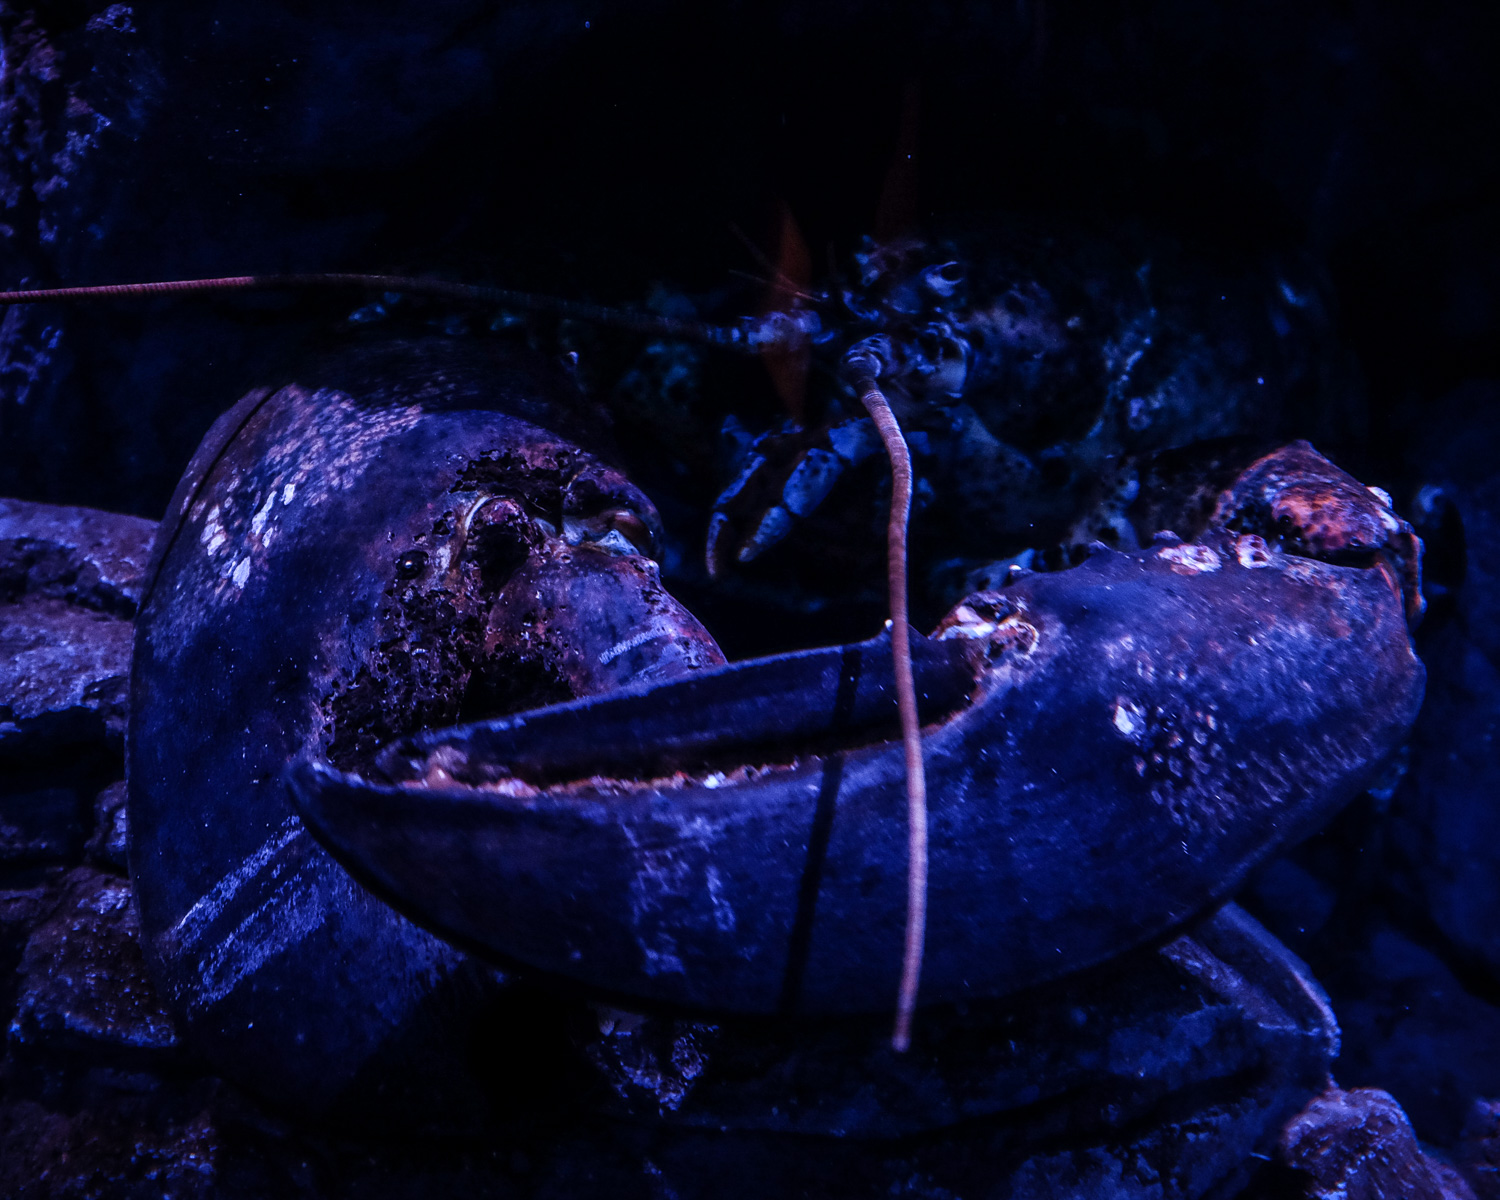 A big lobster with huge claws. How to Take Clear and Creative Photos at Aquariums